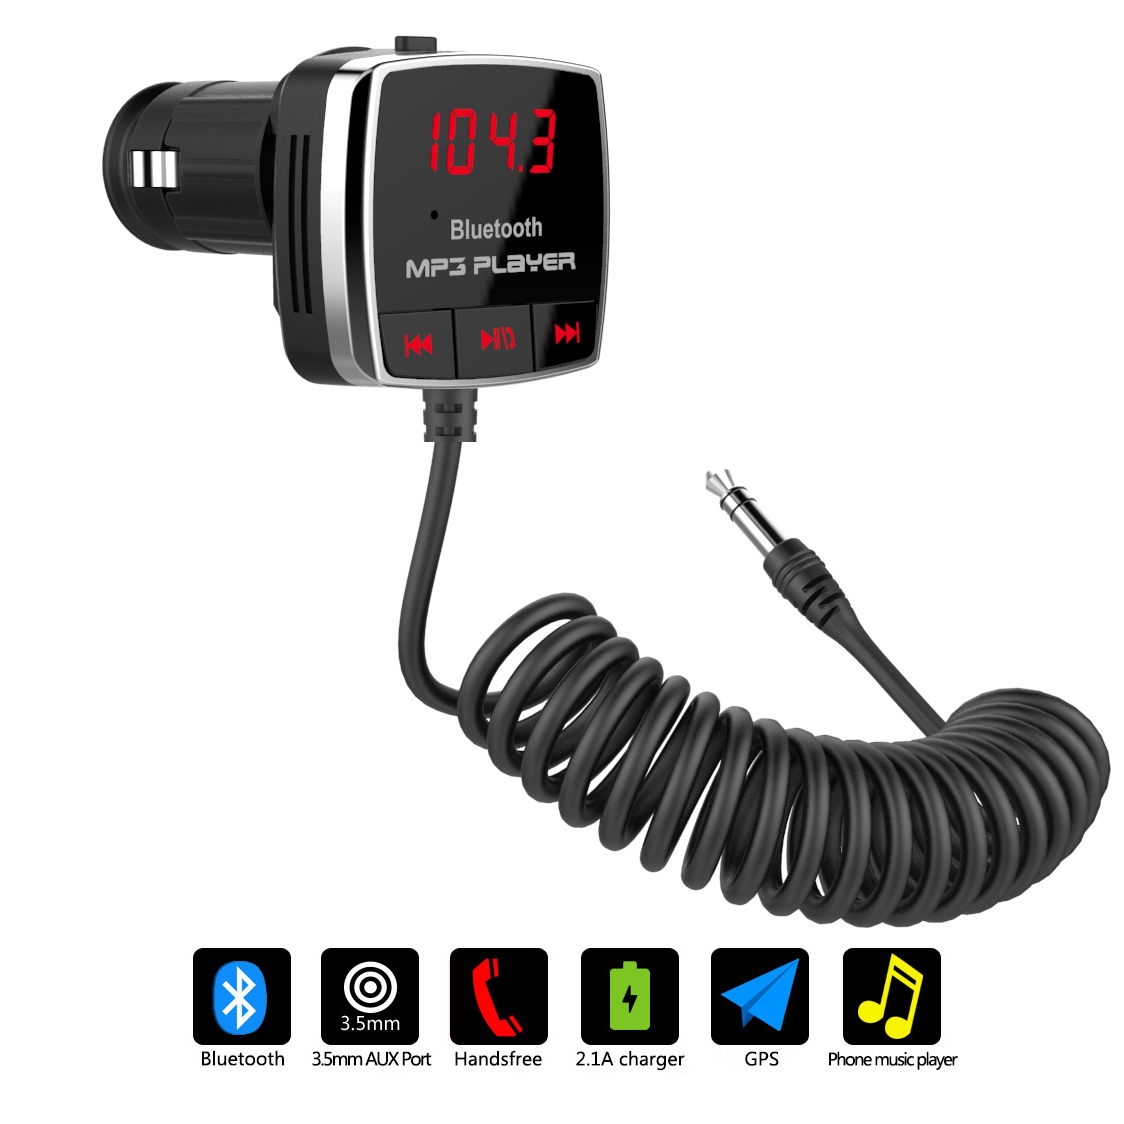 AGPtek Car Bluetooth FM Transmitter A2DP 3.5mm AUX Stereo Audio Receiver Hands-free USB Charger for iPhone Smart Phone